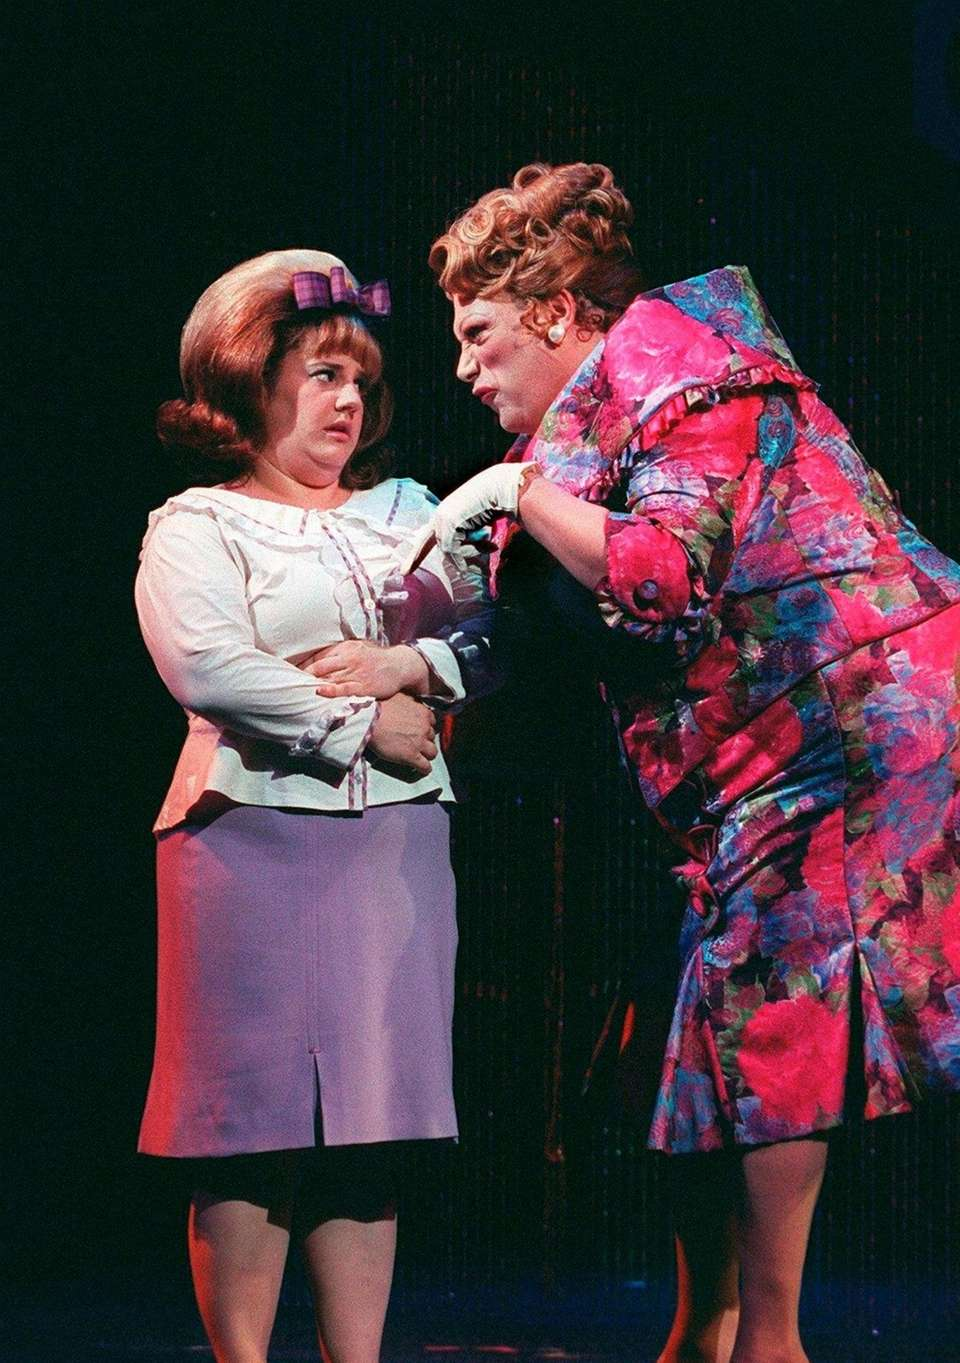 MARISSA JARET WINOKUR and HARVEY FIERSTEIN, as Tracy